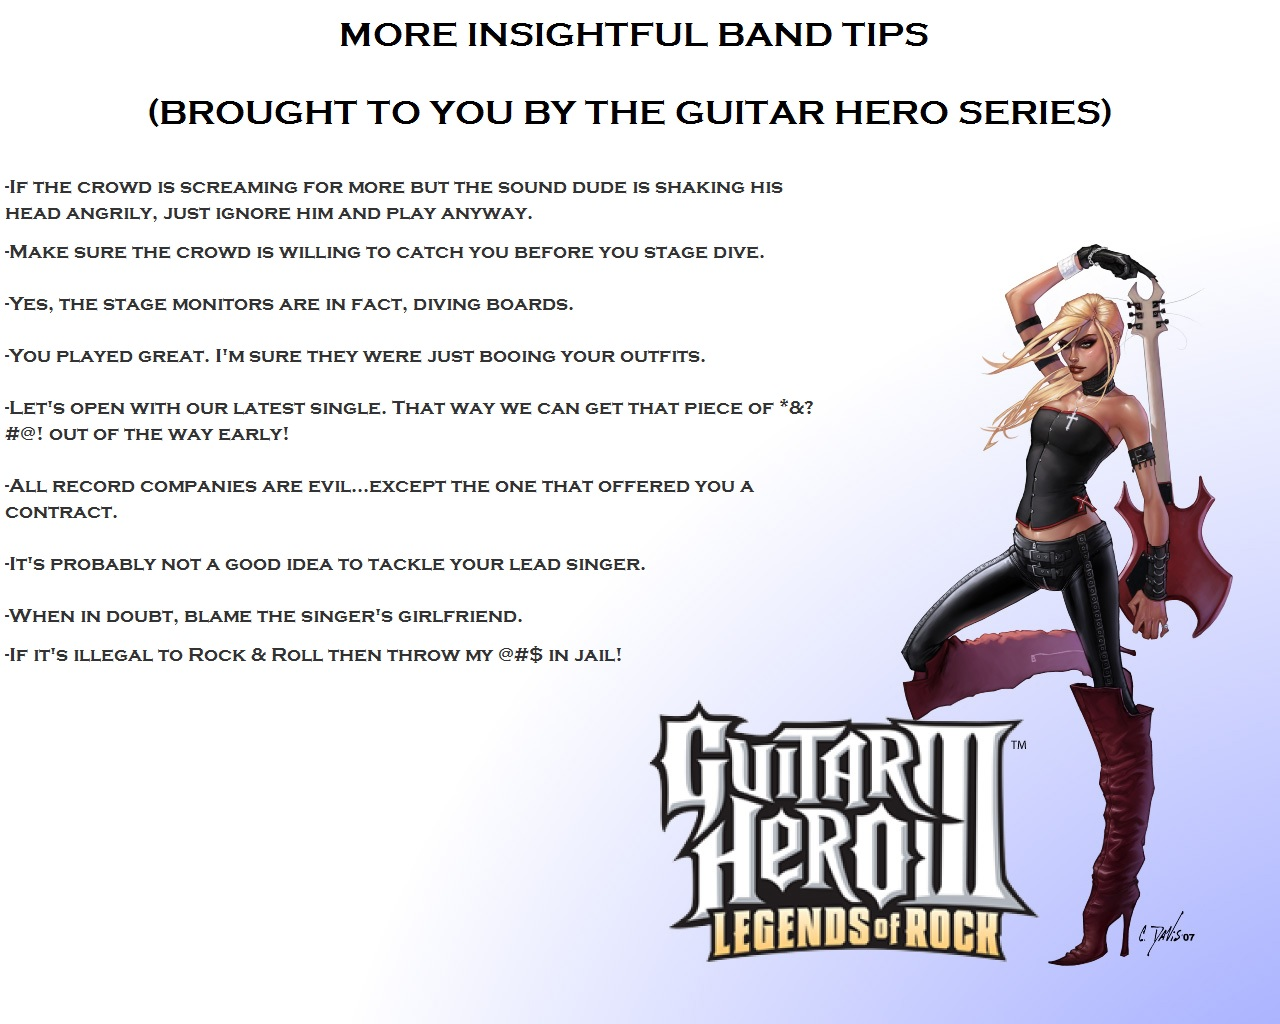 Guitar Hero Tips Part Two